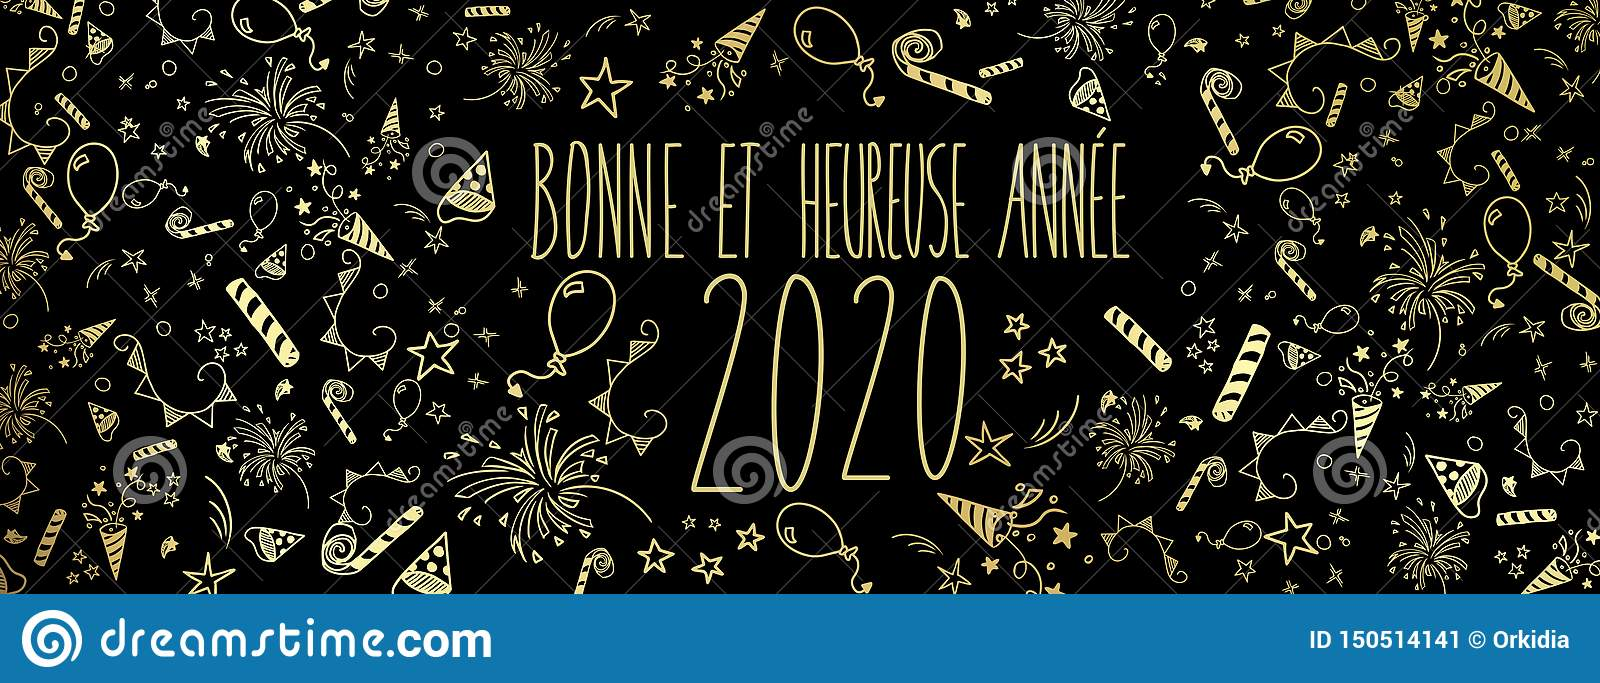 French Happy New Year 2020 Stock Vector Illustration Of Doodle 150514141